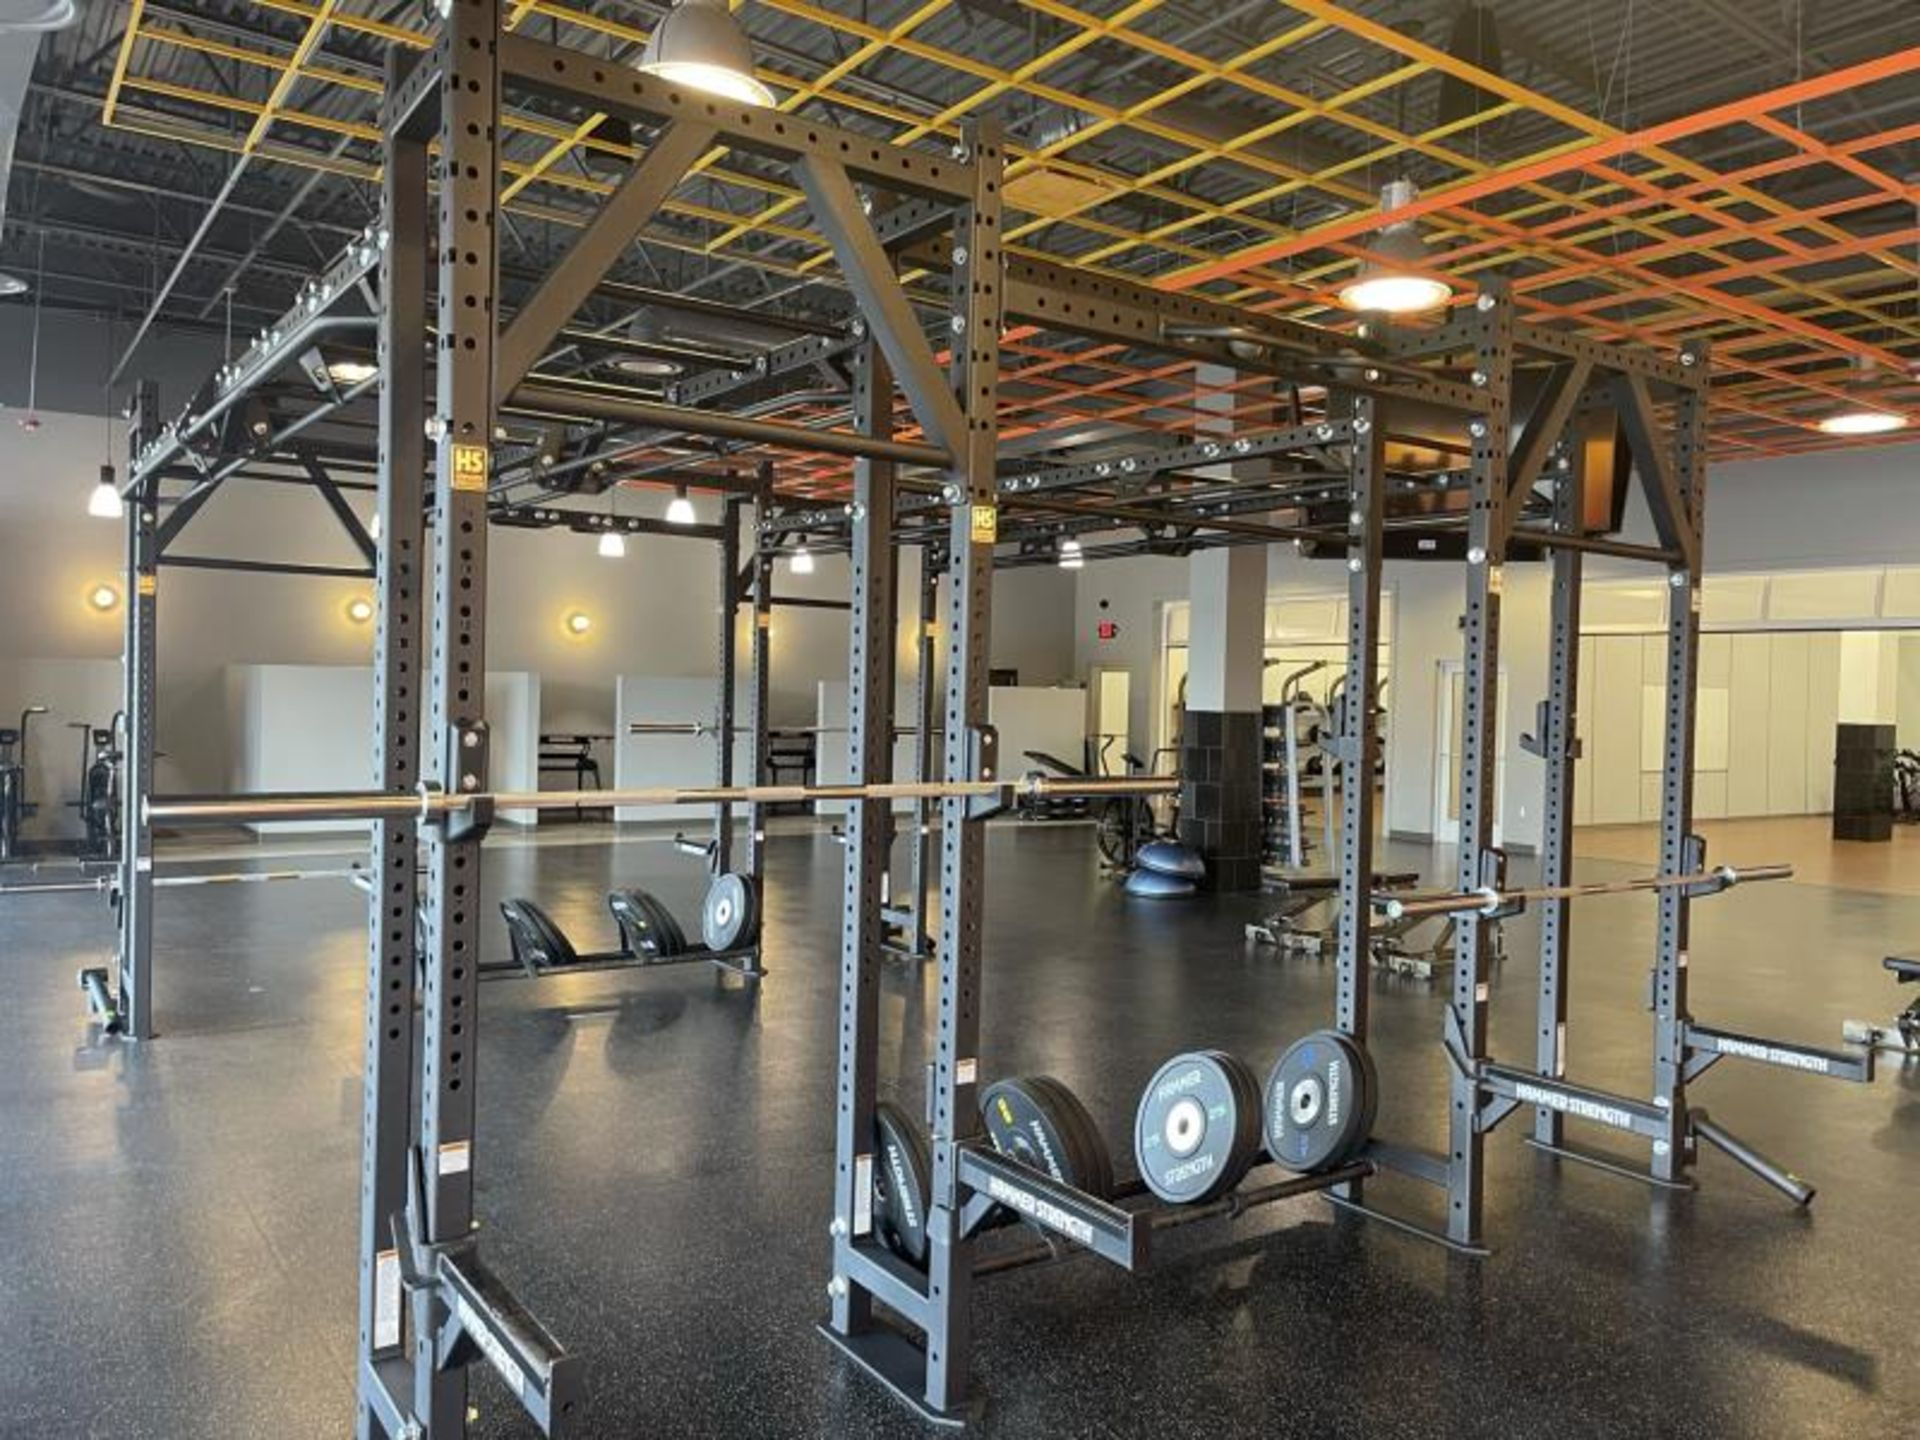 Hammer Strength Multi Station Cage with Hammer Strength Weighted Plates, 4 Bars - Image 7 of 11